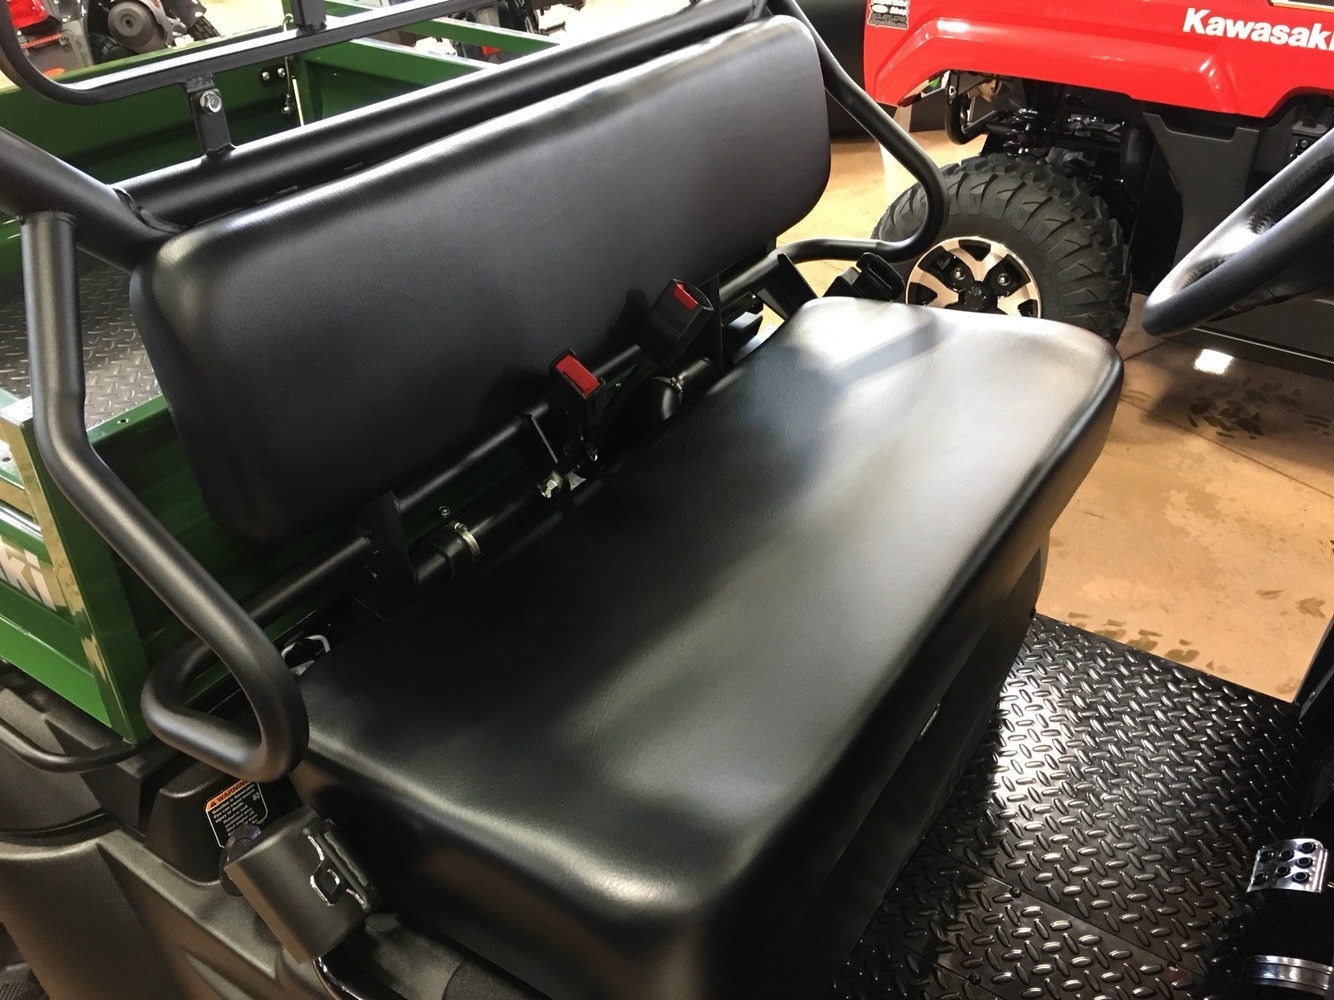 2019 Kawasaki Mule SX 4X4 in Evansville, Indiana - Photo 22